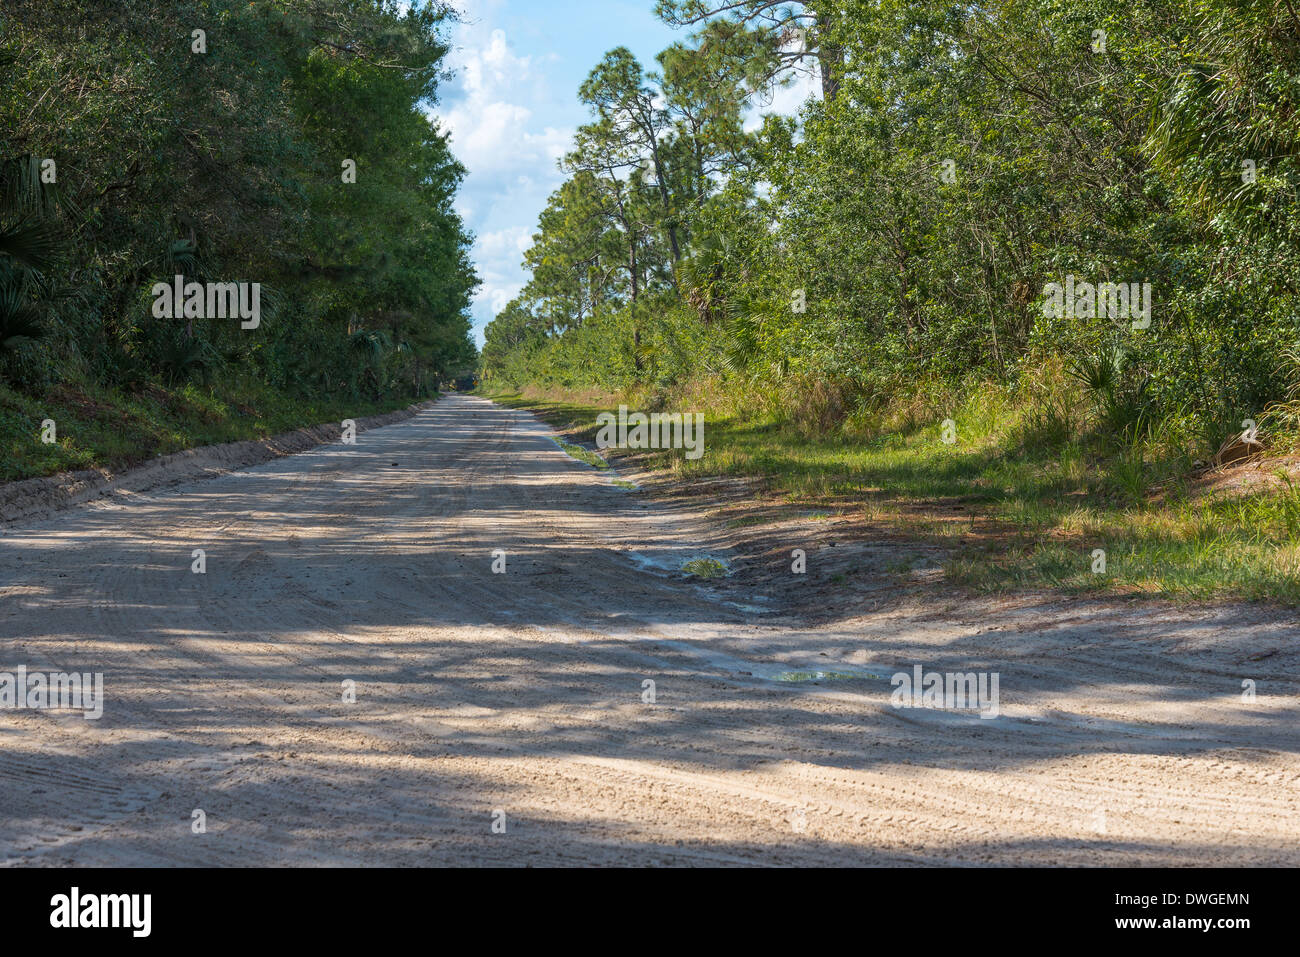 Sunlight and shadows dapple a country roar in Indian River County, Florida, USA. - Stock Image